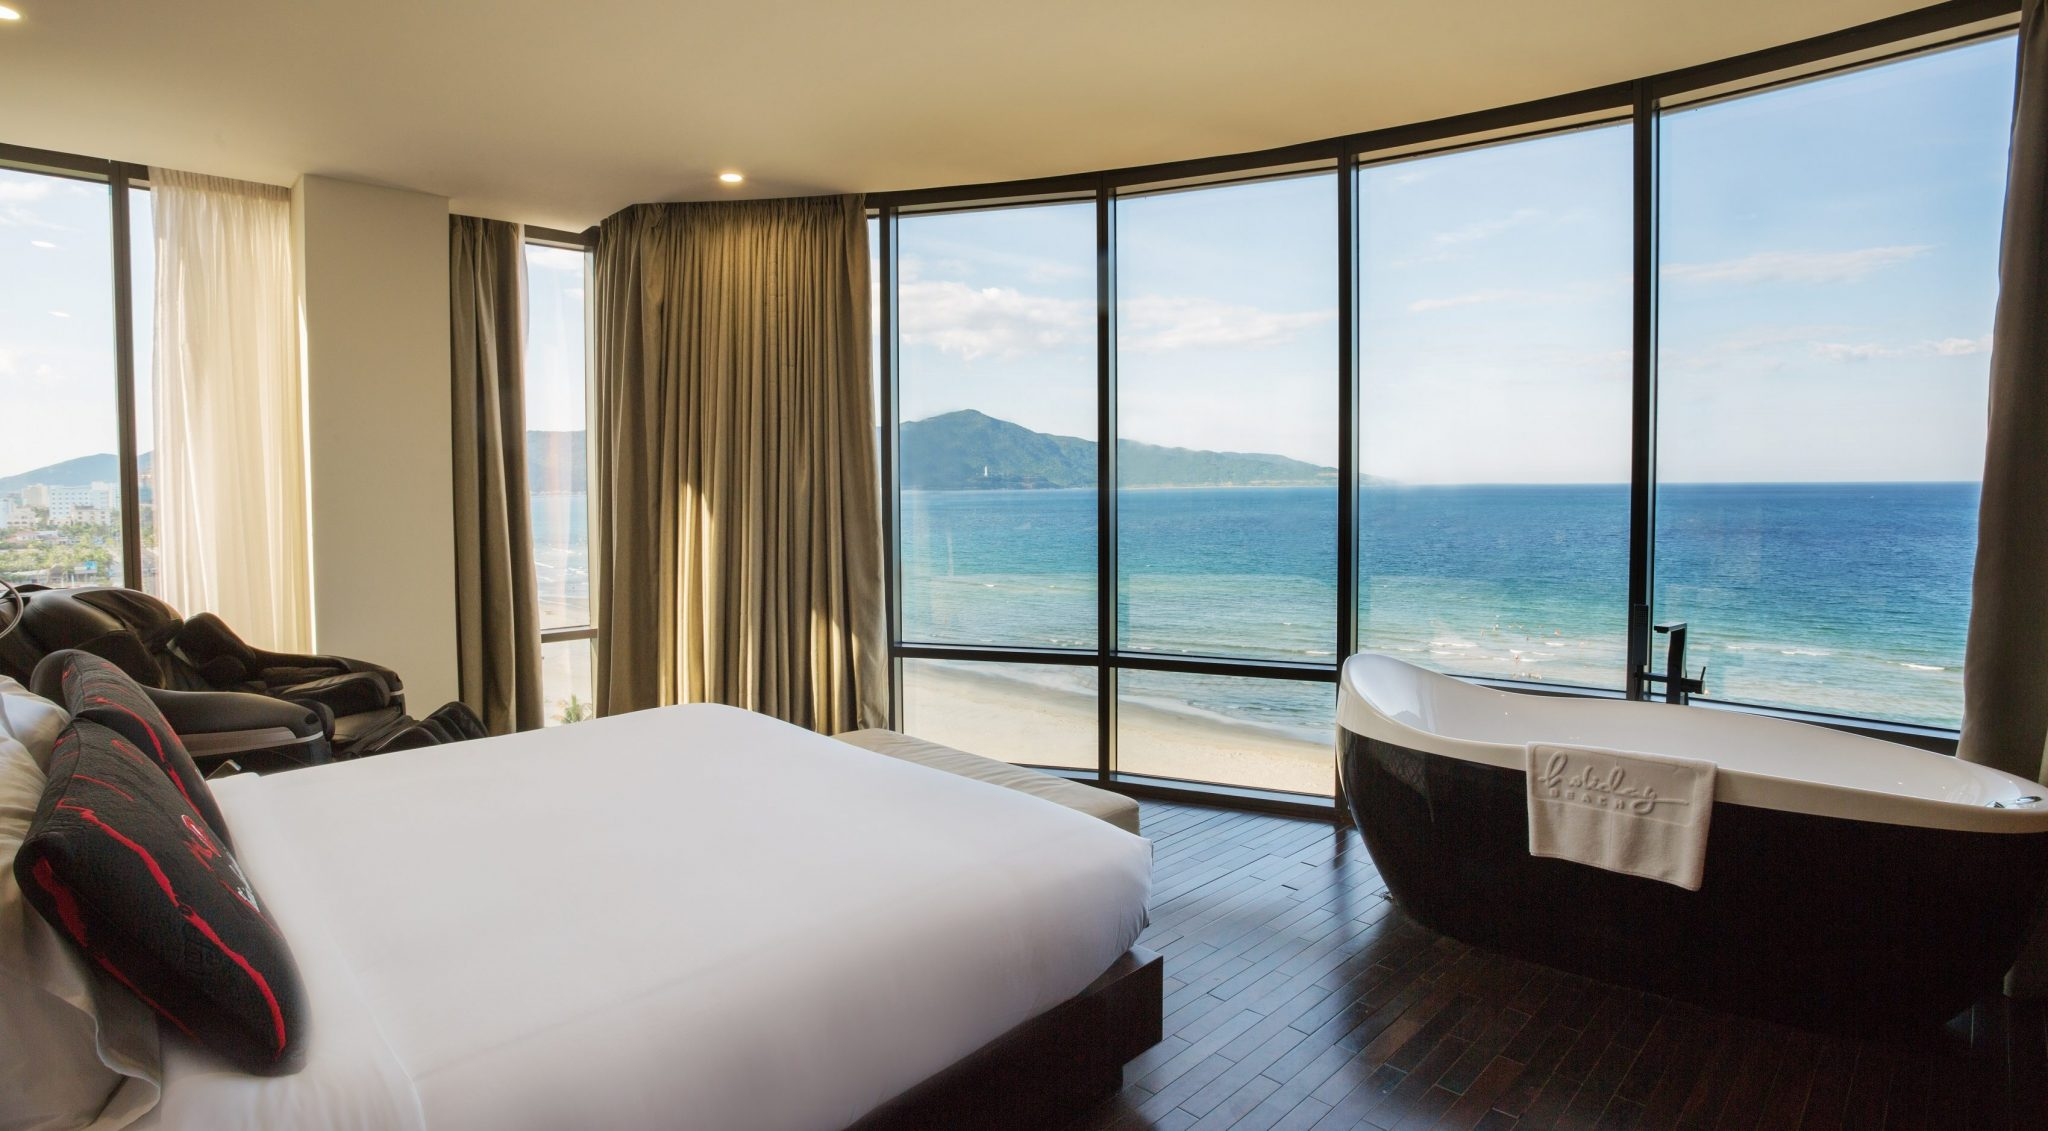 Image result for Khách sạn Holiday Beach room